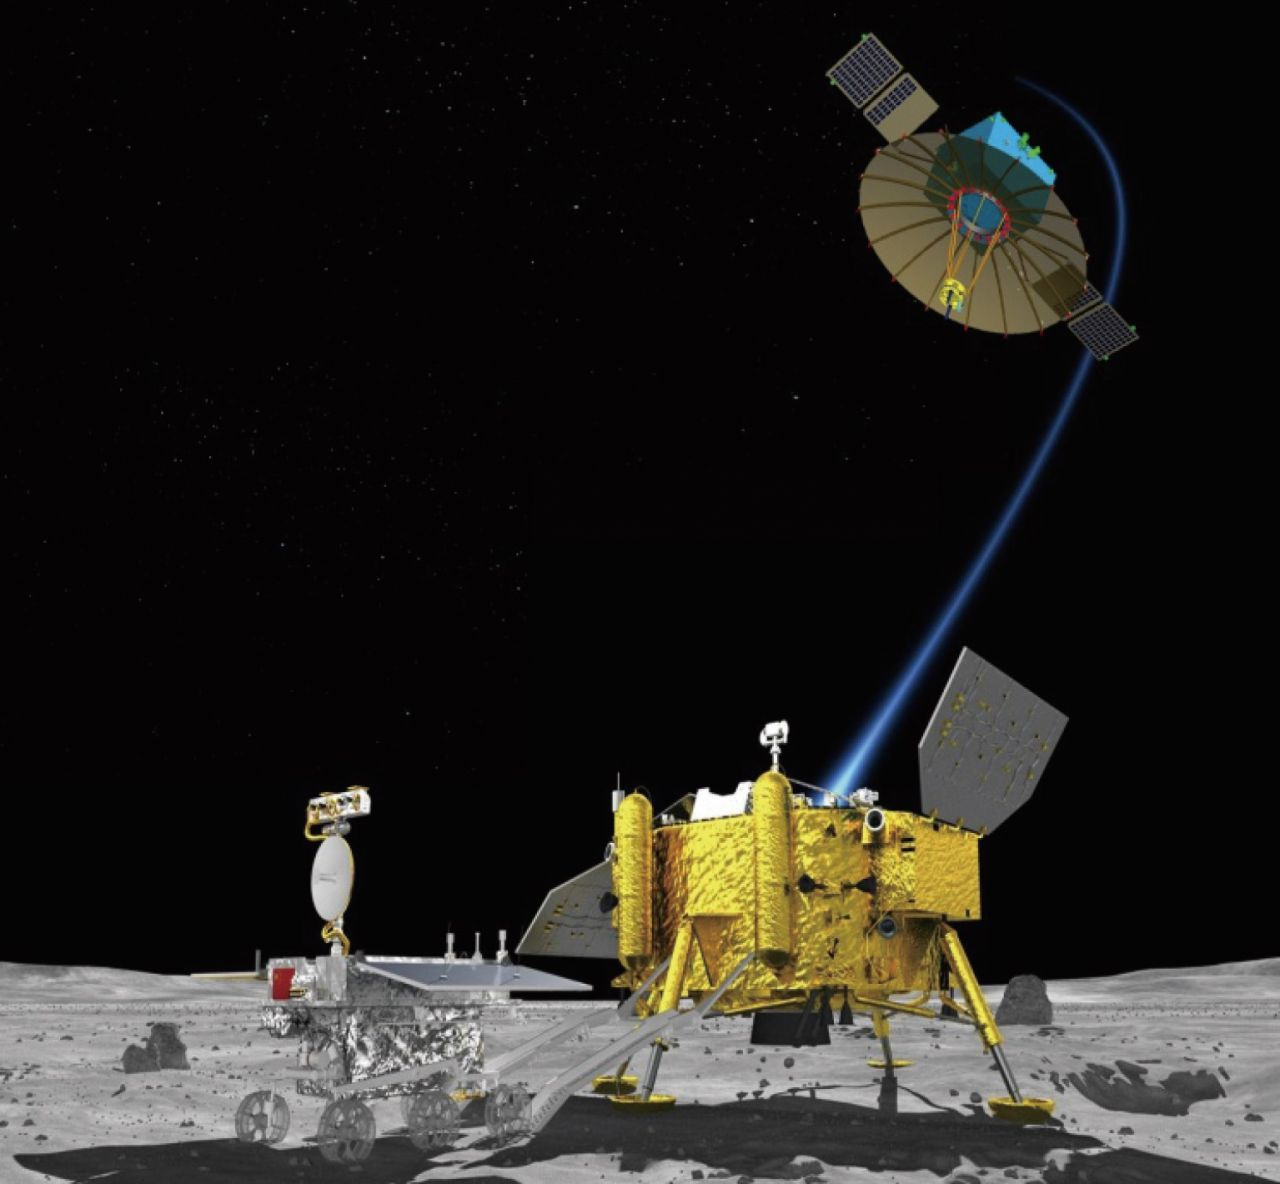 A rendering of the Chang'e-4 relay satellite, to launch in May 2018, and lander and rover to set down on the lunar far side in late 2018.